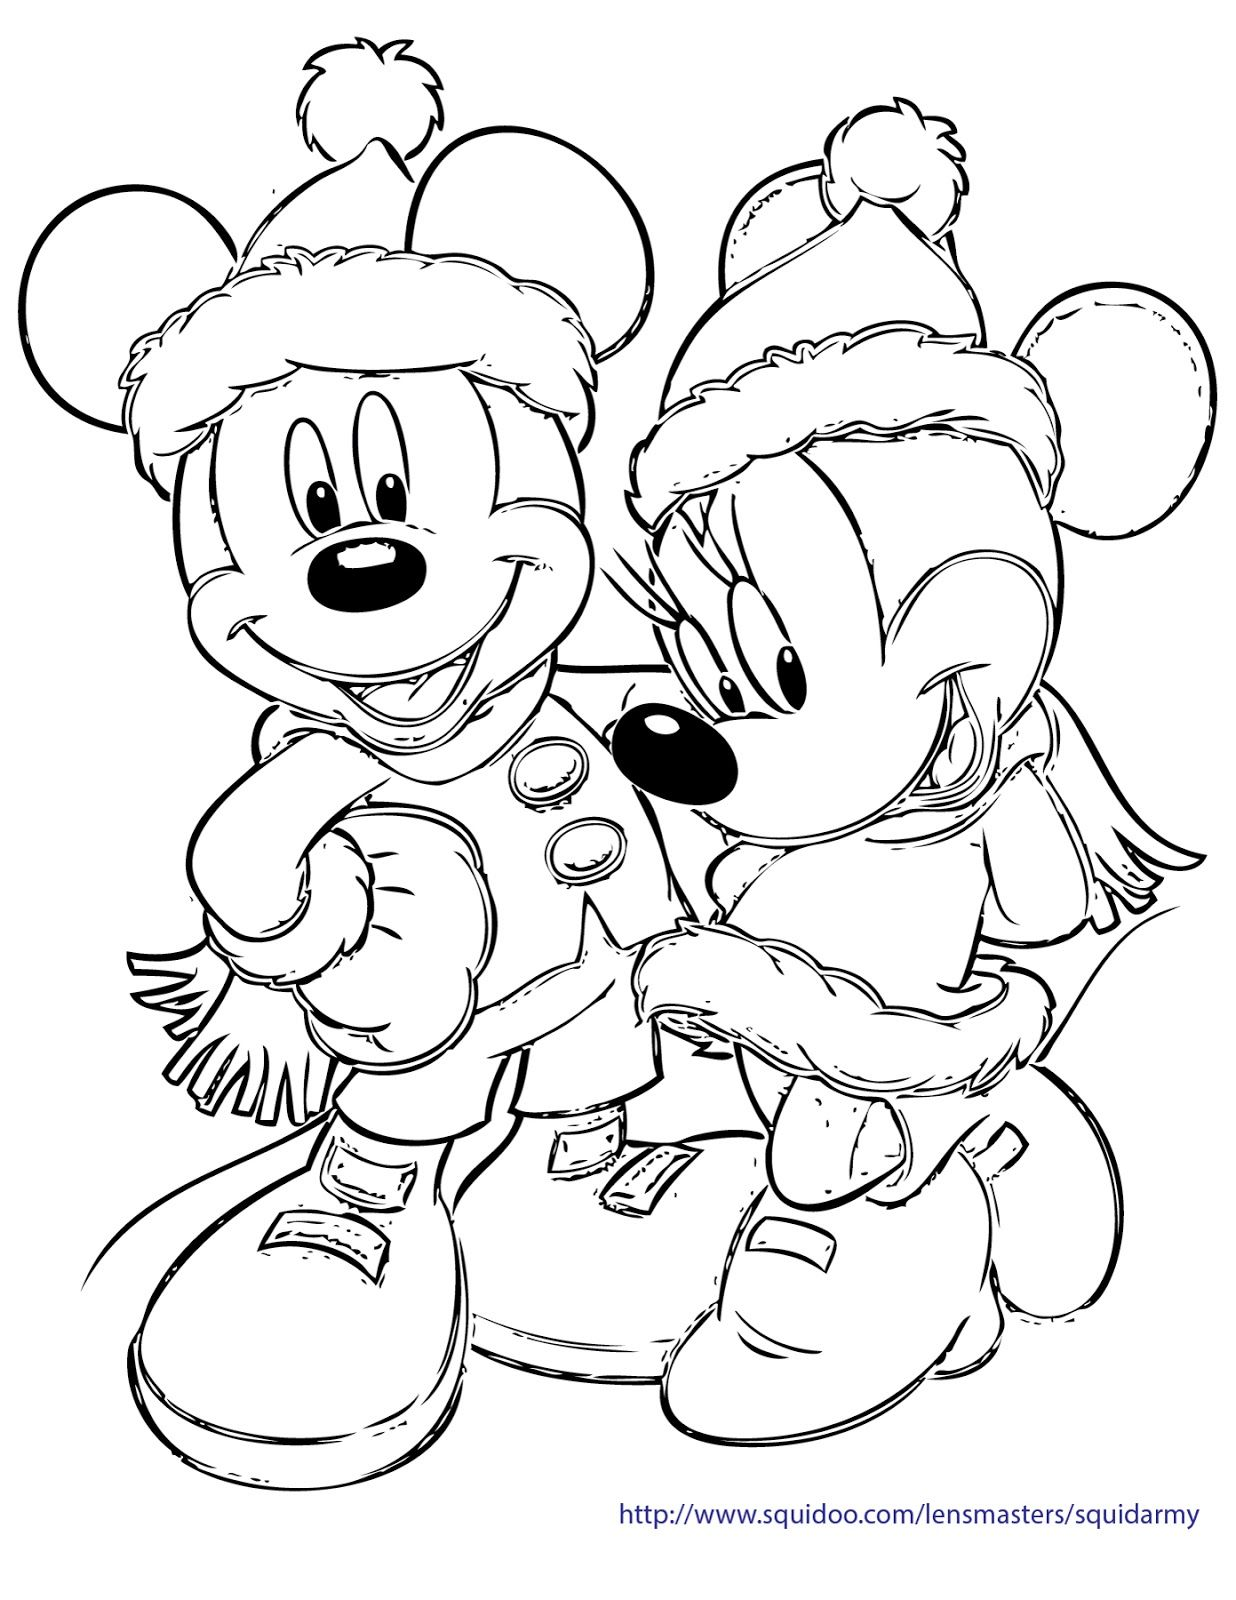 Coloring pages for school age kids - Coloring Pages For School Age Christmas Coloring Pages Can Be Fun For Children Of Any